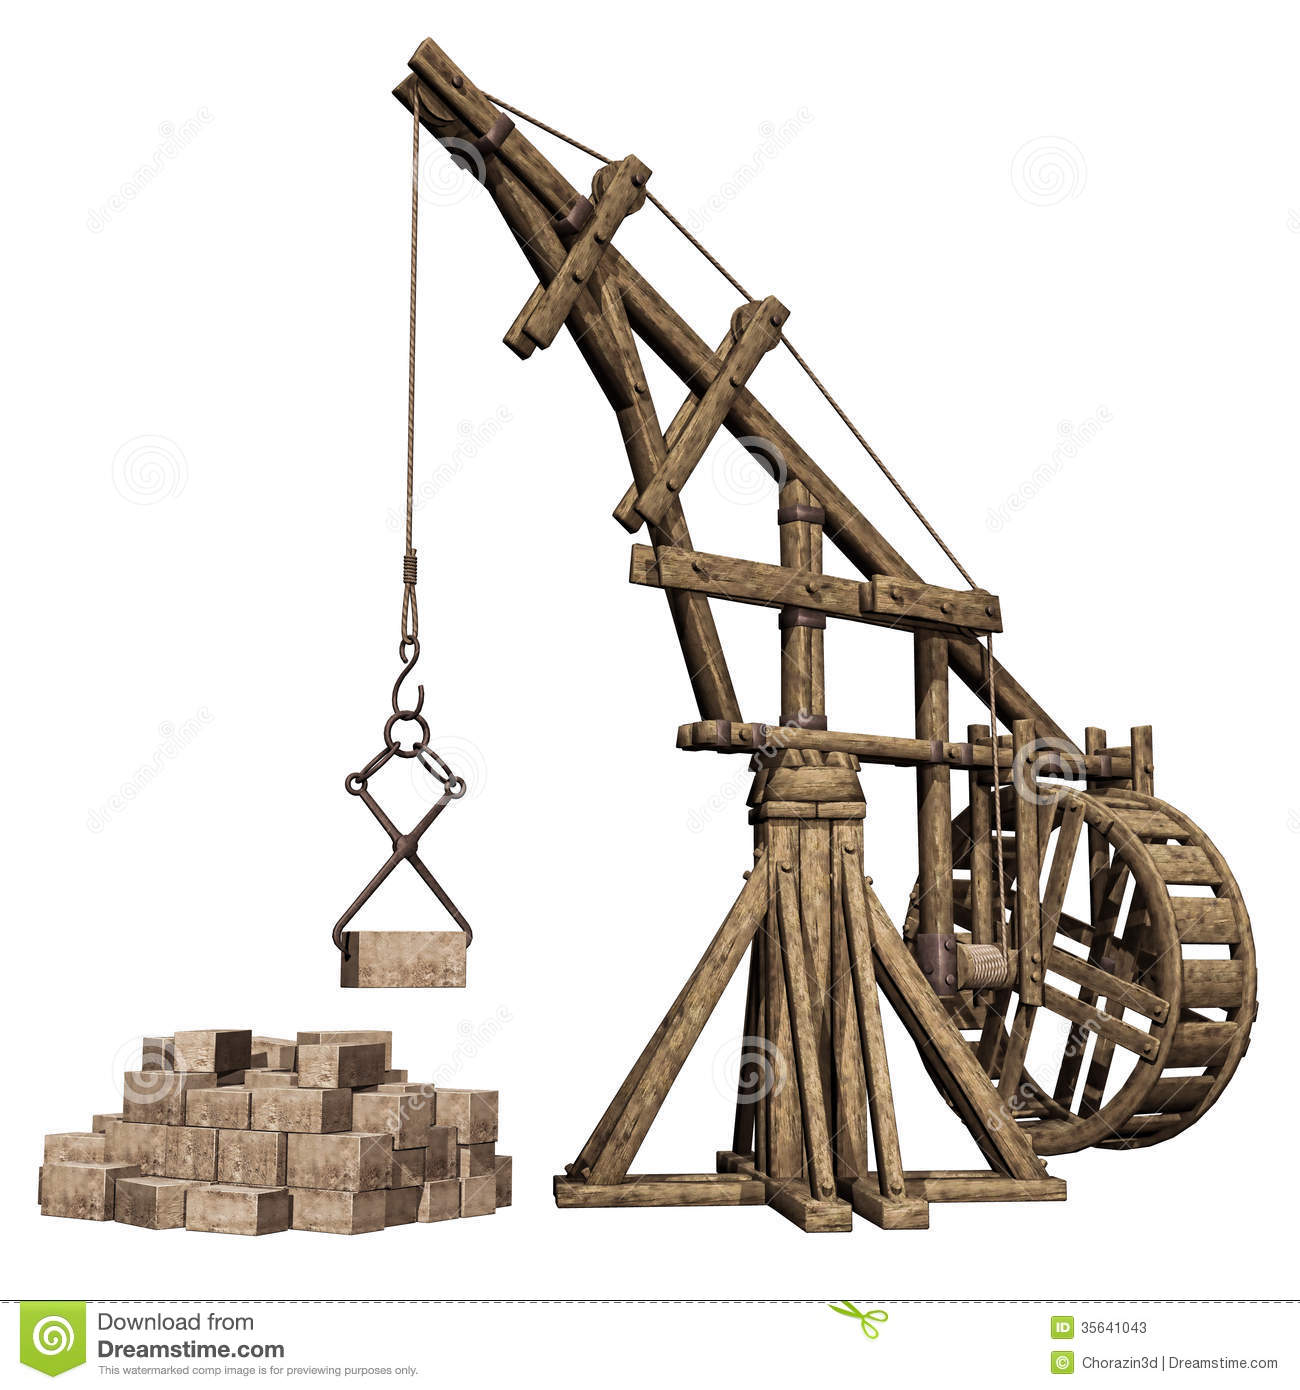 Wooden Crane And Stones Stock Photos - Image: 35641043